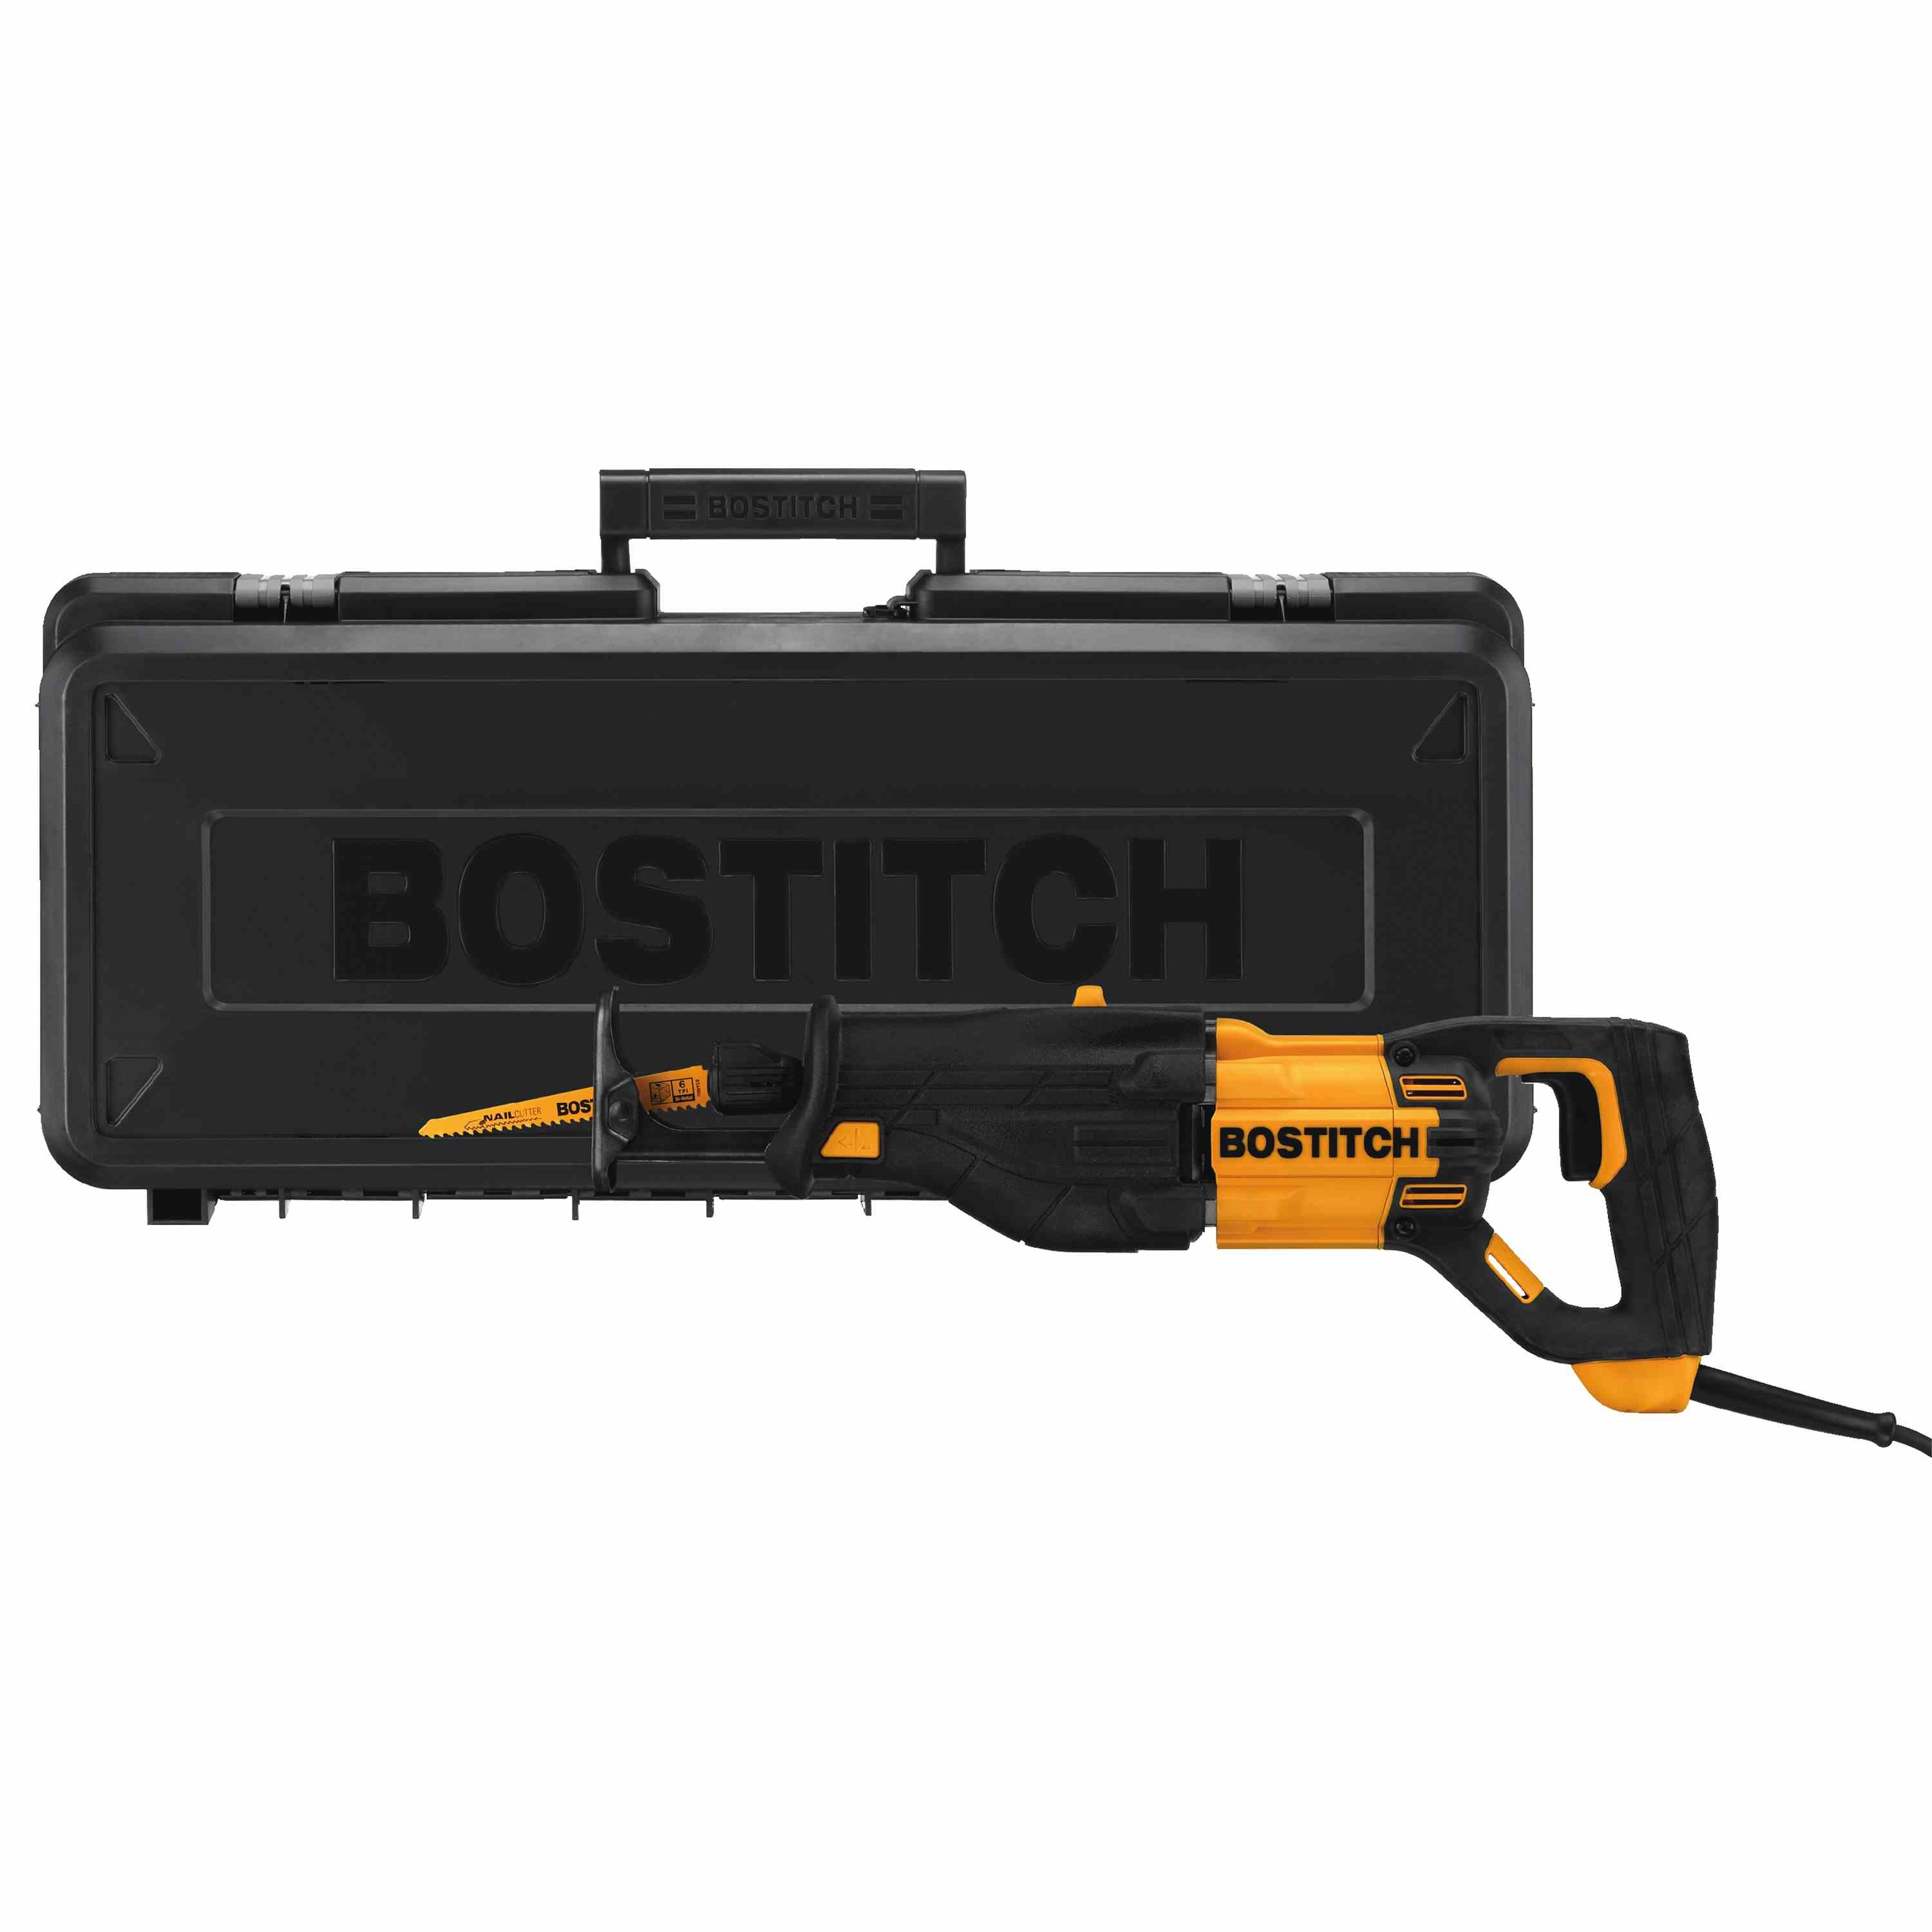 Bostitch - 85 Amp Orbital Reciprocating Saw Kit - BTE360K